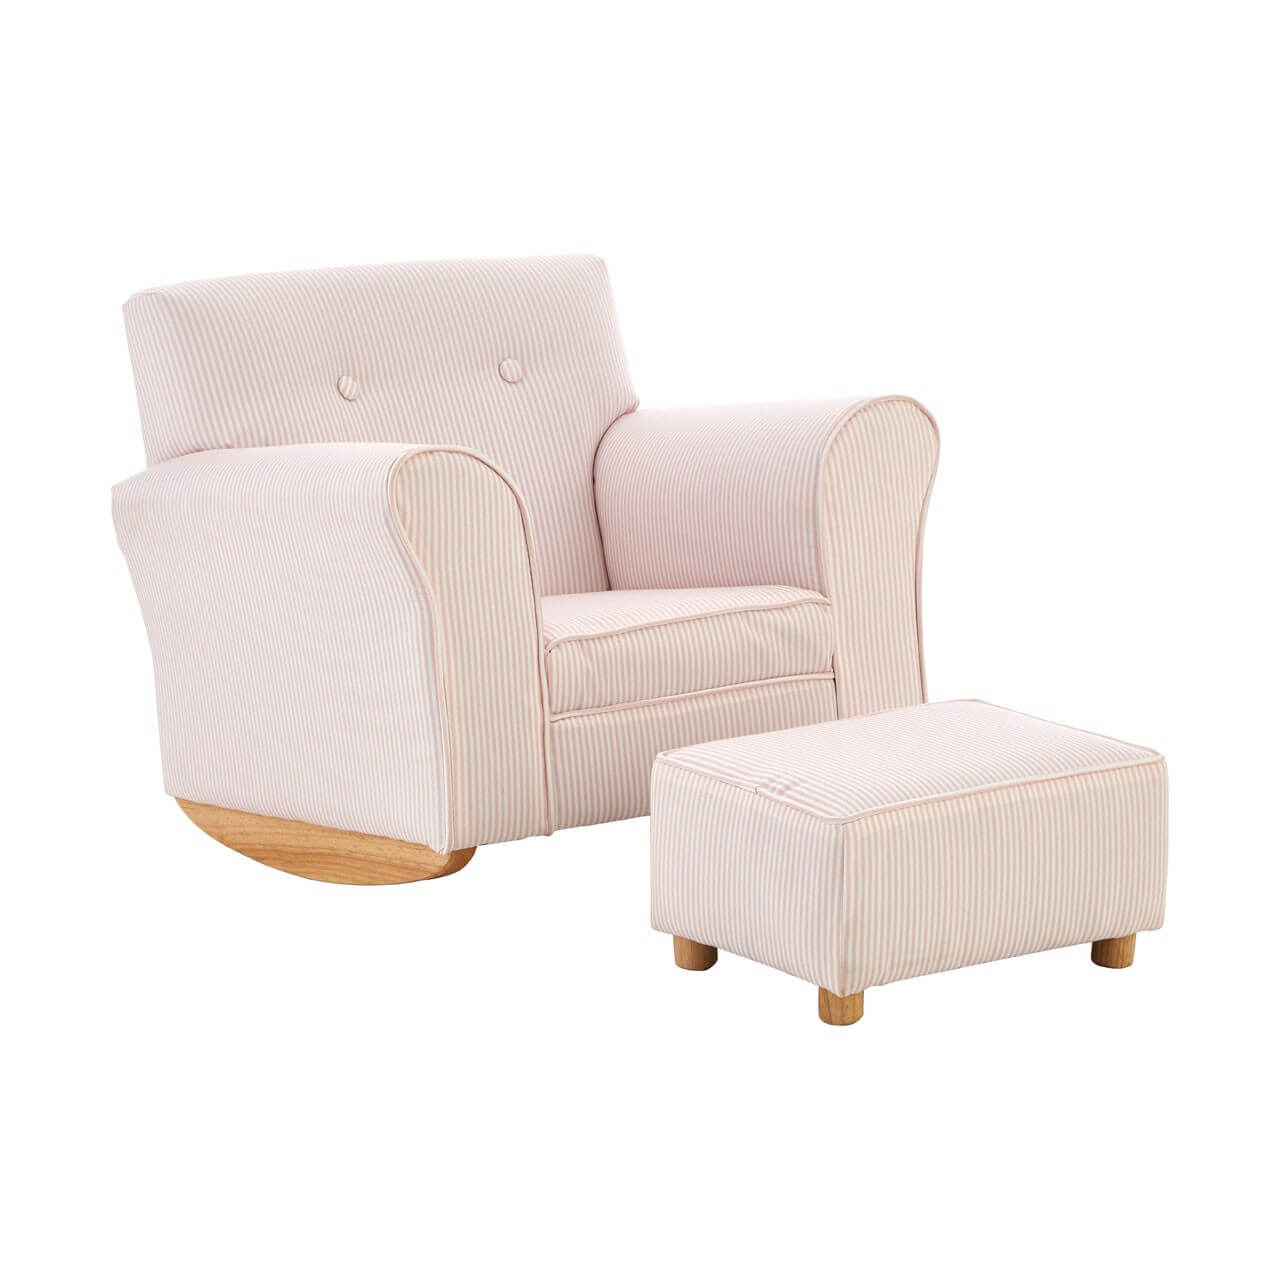 Picture of: Olivia Kids Pink And White Stripe Fabric Rocker Chair With Footstool Designer Sofas 4u